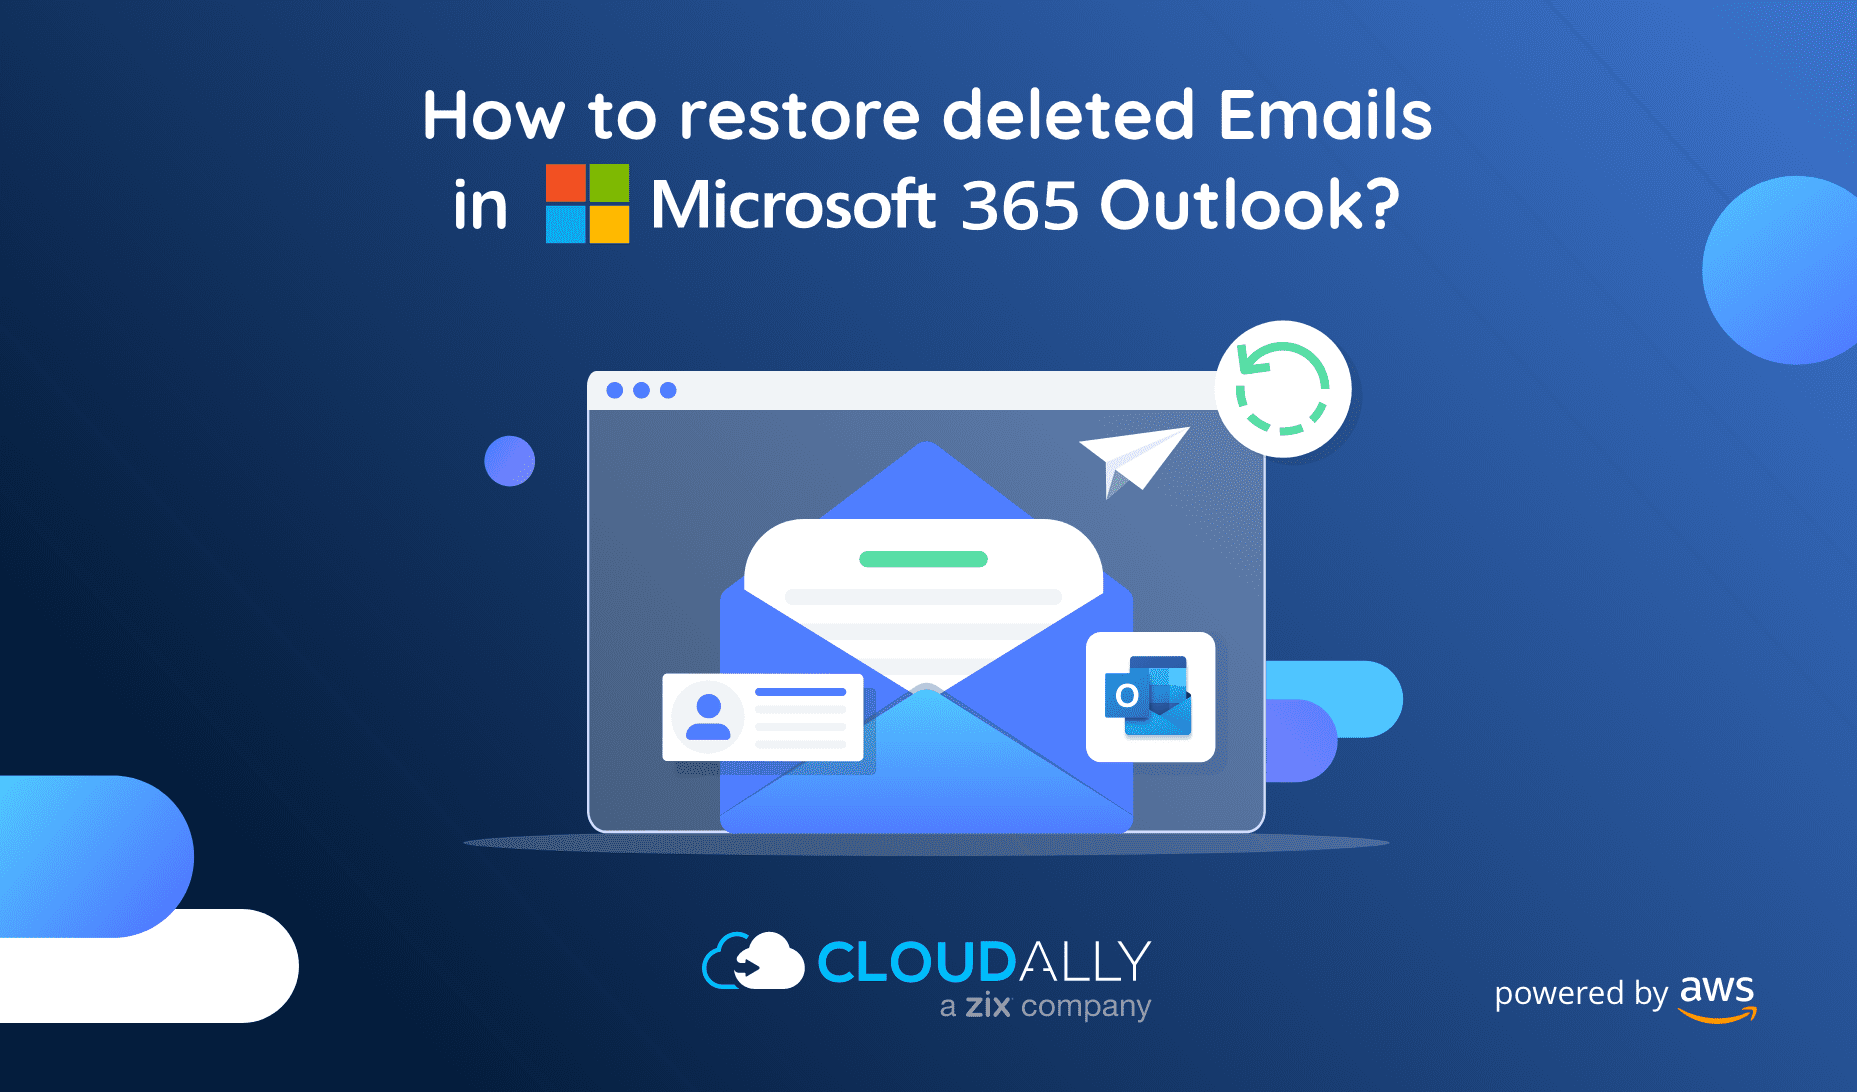 To Restore deleted emails in MS Outlook